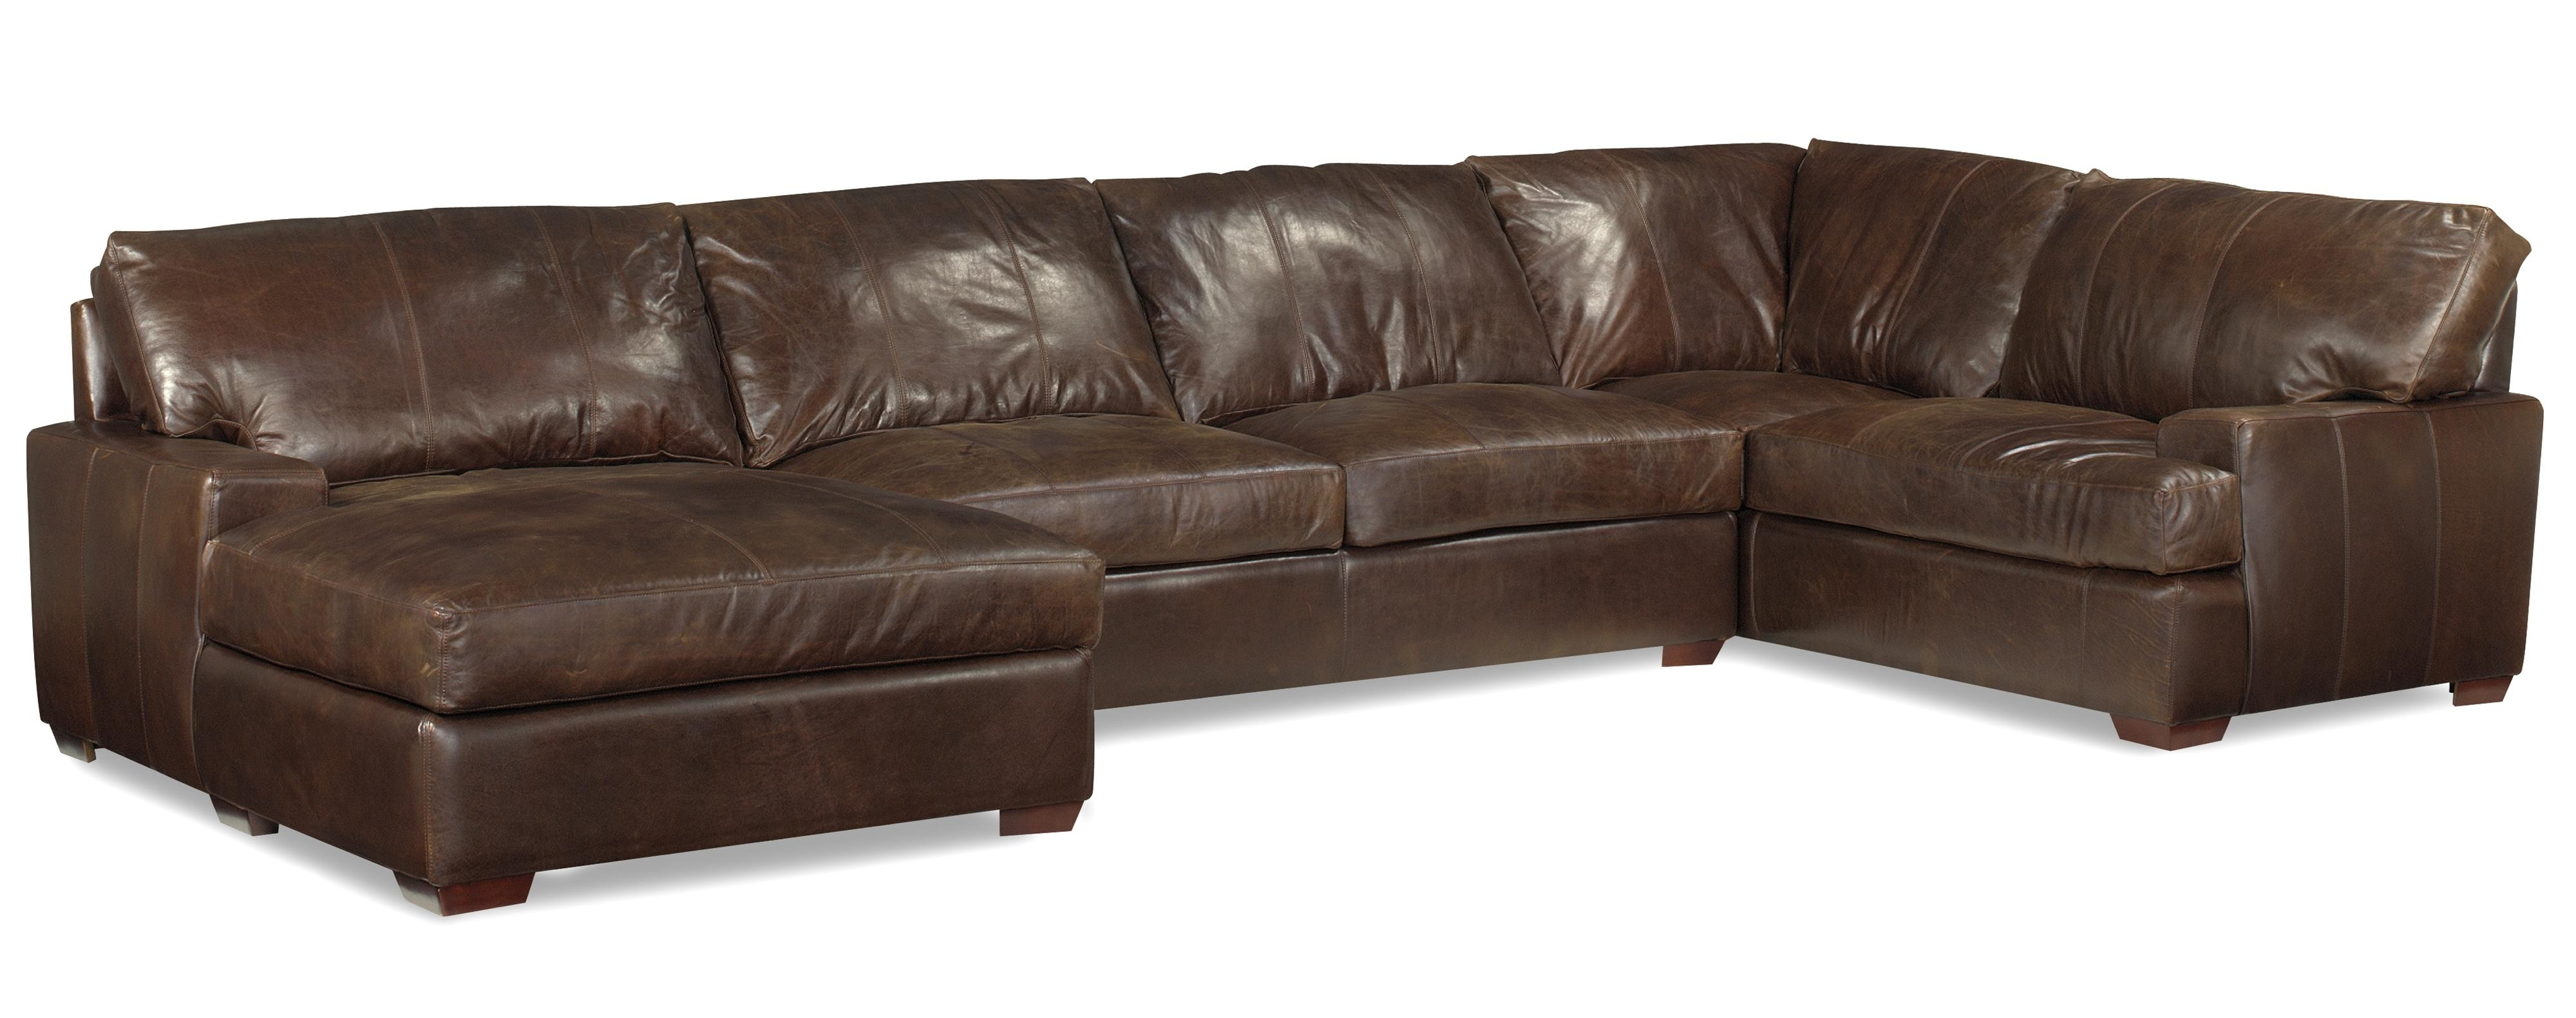 Favorite Leather Sectional Chaises Pertaining To Ikea Ektorp Sectional Loveseat Sectional With Chaise Sectionals (View 12 of 15)